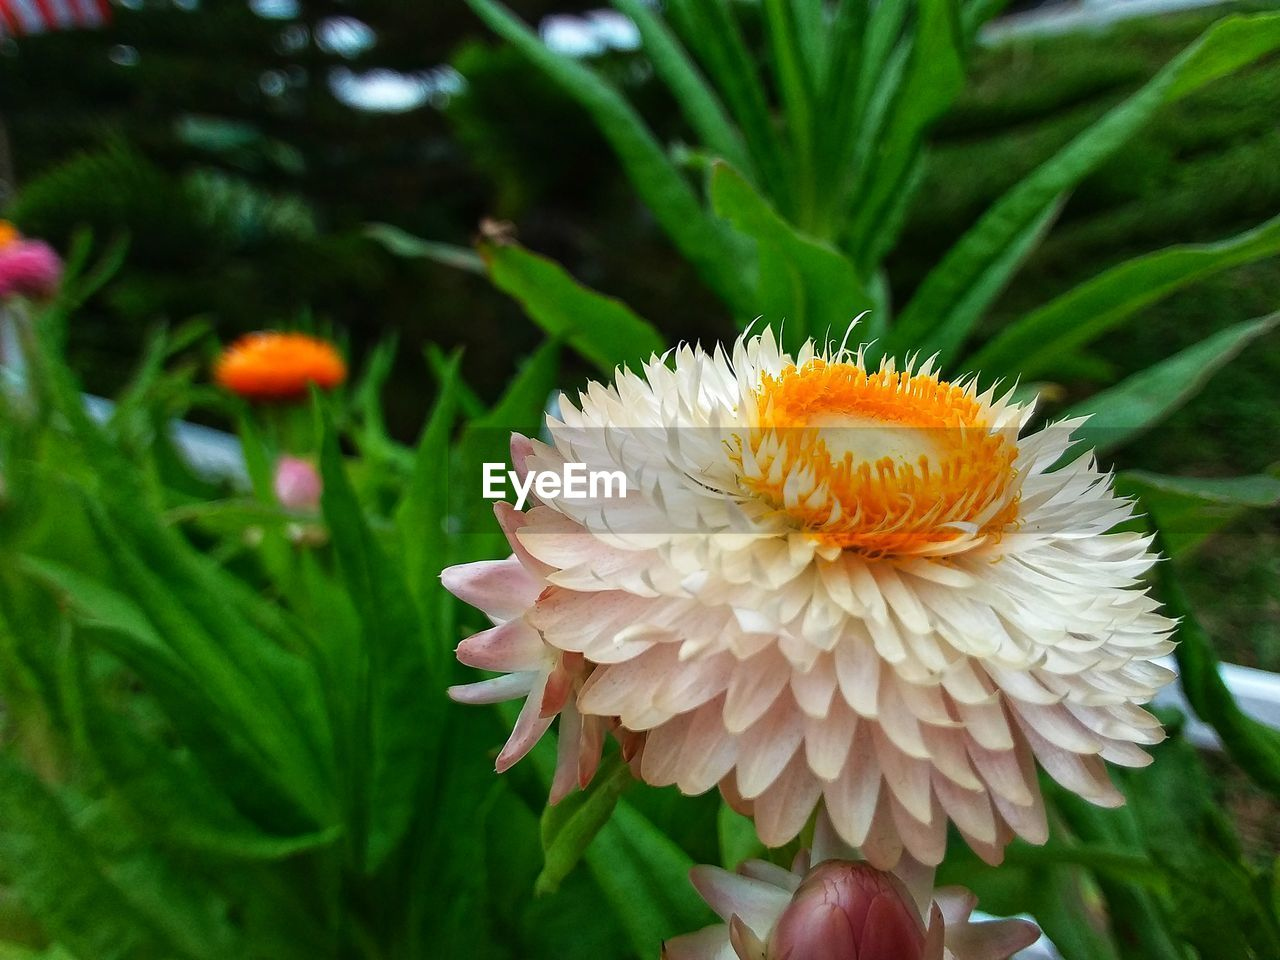 flowering plant, flower, plant, beauty in nature, vulnerability, freshness, fragility, petal, growth, close-up, flower head, inflorescence, nature, focus on foreground, green color, orange color, day, no people, leaf, invertebrate, pollen, pollination